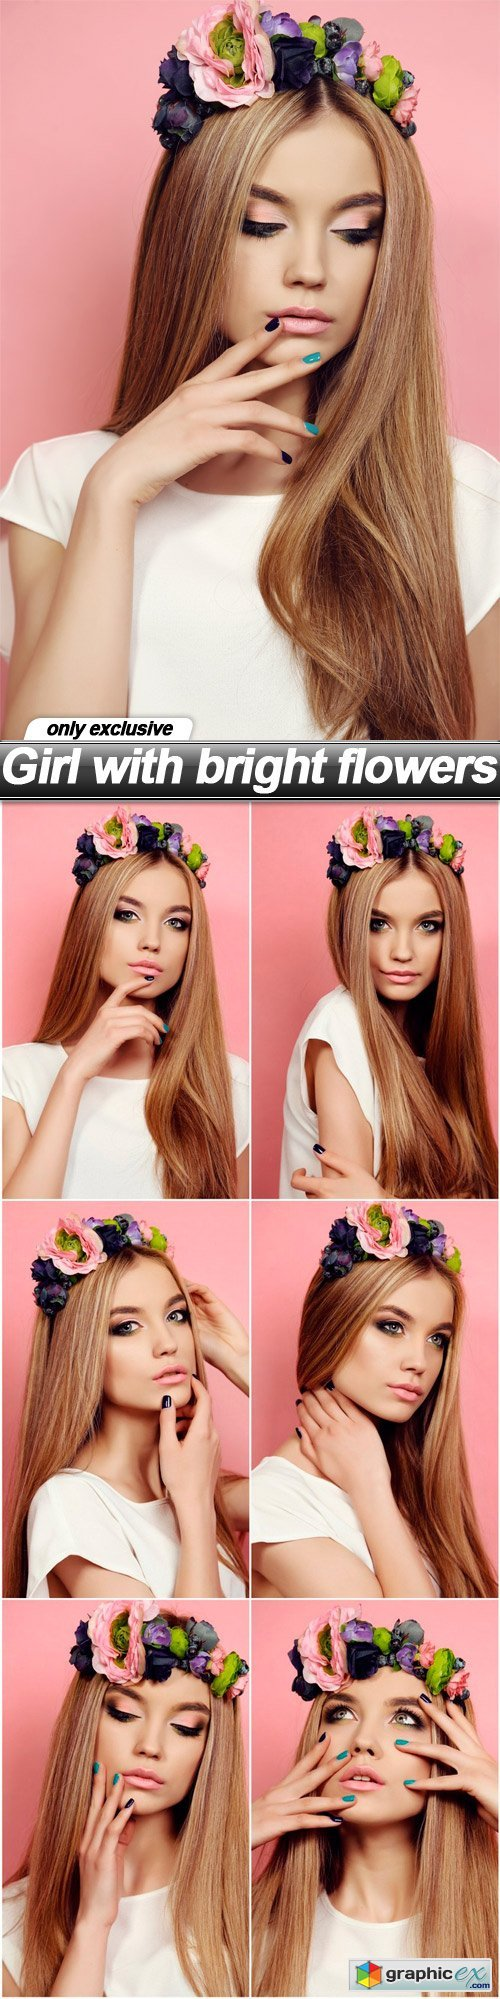 Girl with bright flowers - 7 UHQ JPEG